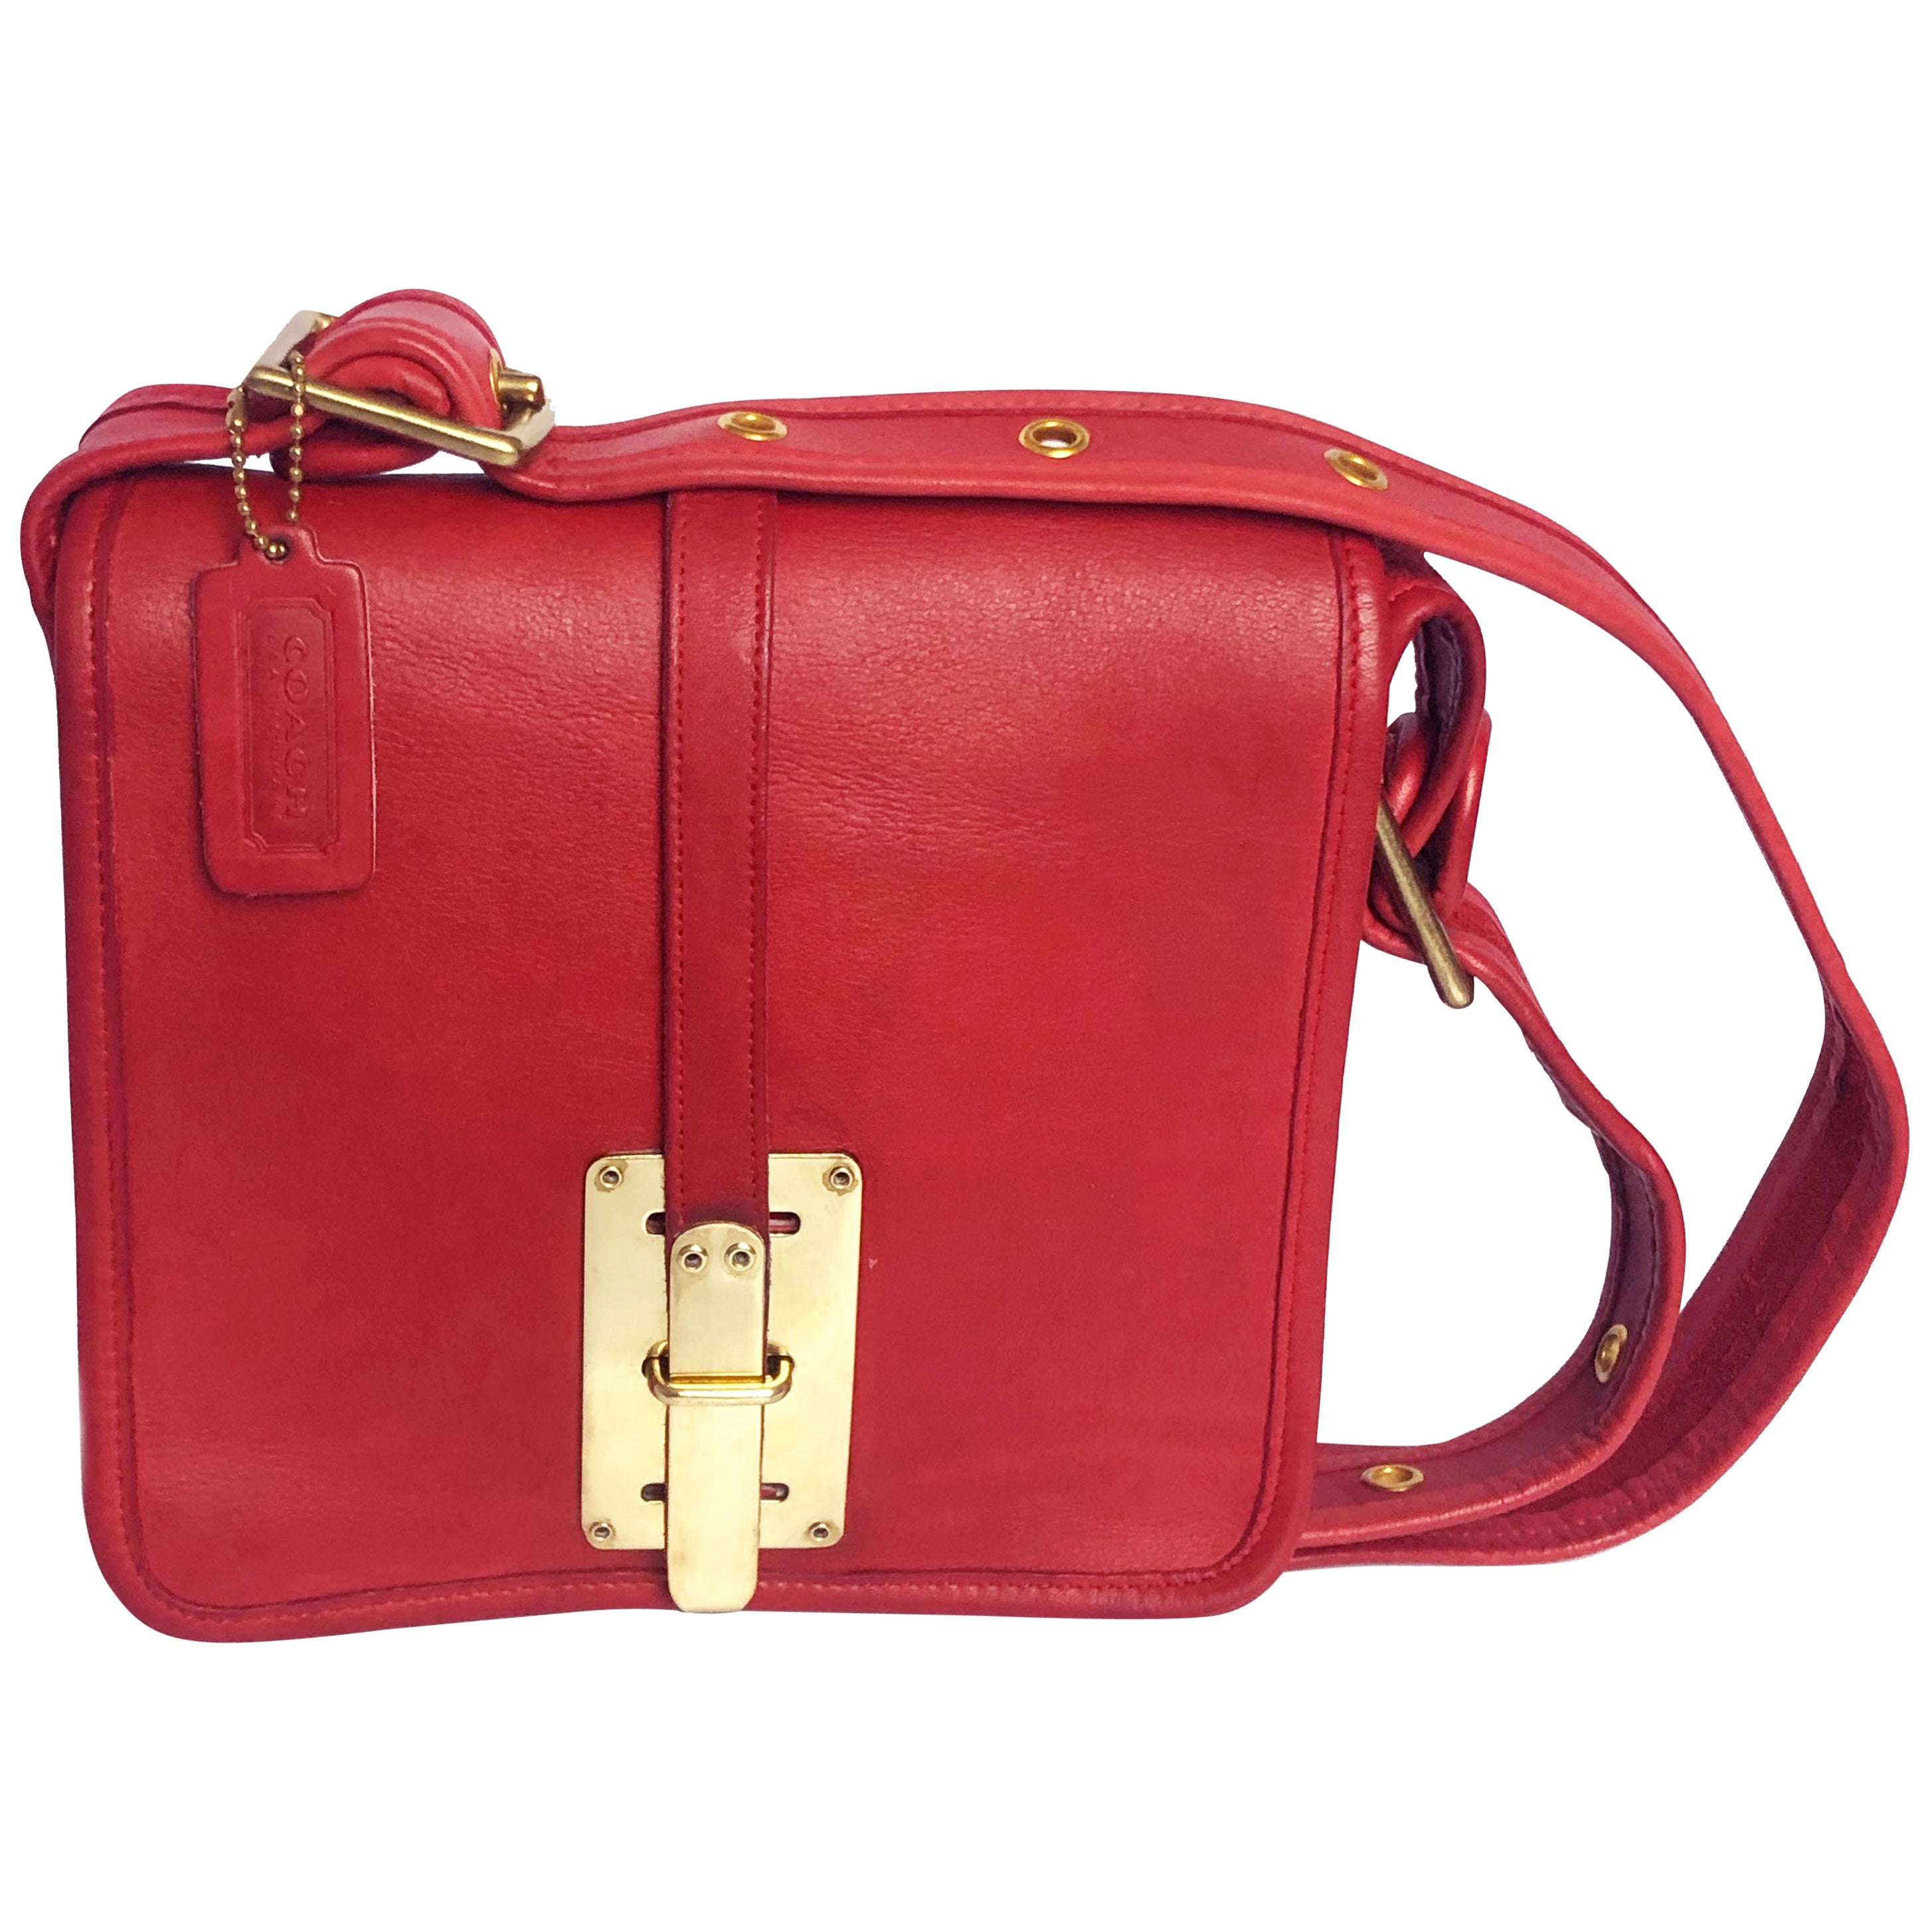 Bonnie Cashin for Coach Shoulder Bag with Hasp Lock Red Leather Vintage 70s Rare